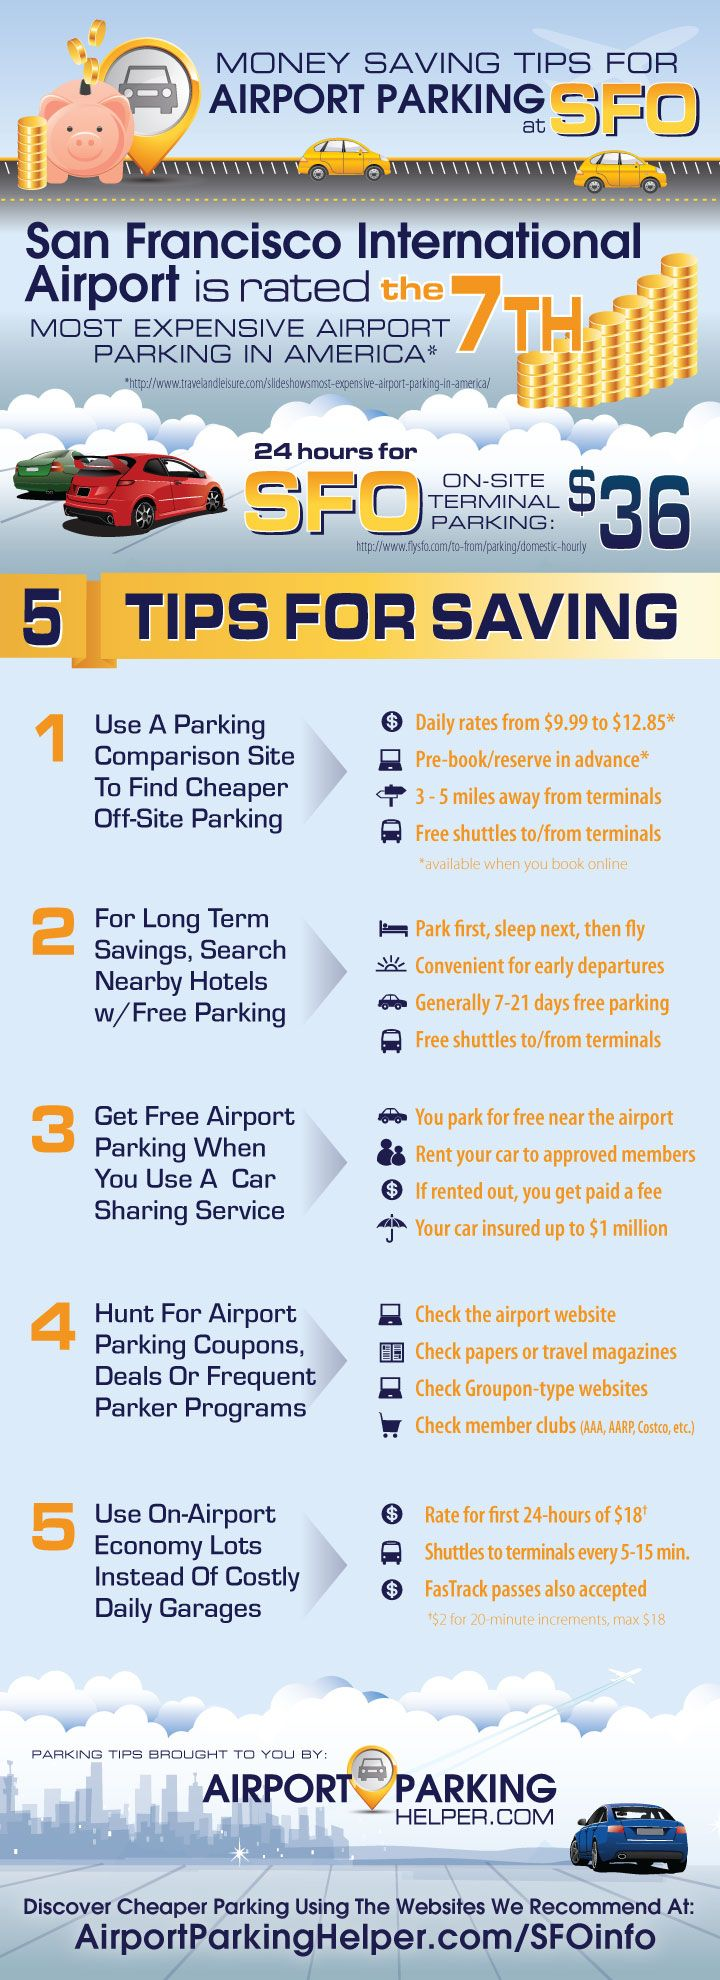 5 Ways To Get Cheap Sfo Parking Rates Sfo Parking Coupons Travel Nursing Agencies Budget Travel Tips Honeymoon On A Budget